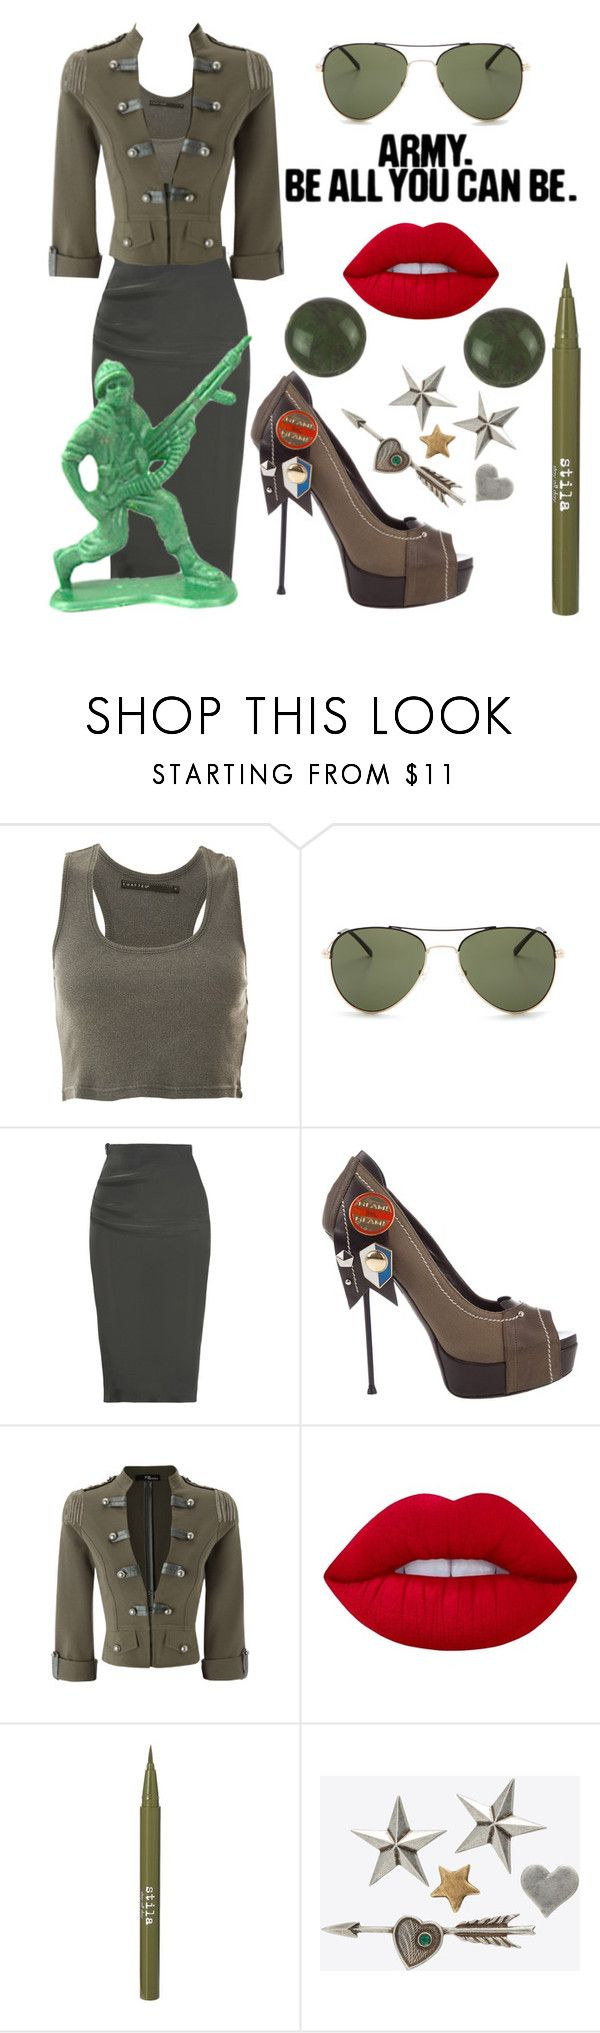 """ATTENTION !"" by stephanie-mac ❤ liked on Polyvore featuring Crafted, BCBGMAXAZRIA, Lanvin, Gianmarco Lorenzi, Lime Crime, Stila and Yves Saint Laurent"